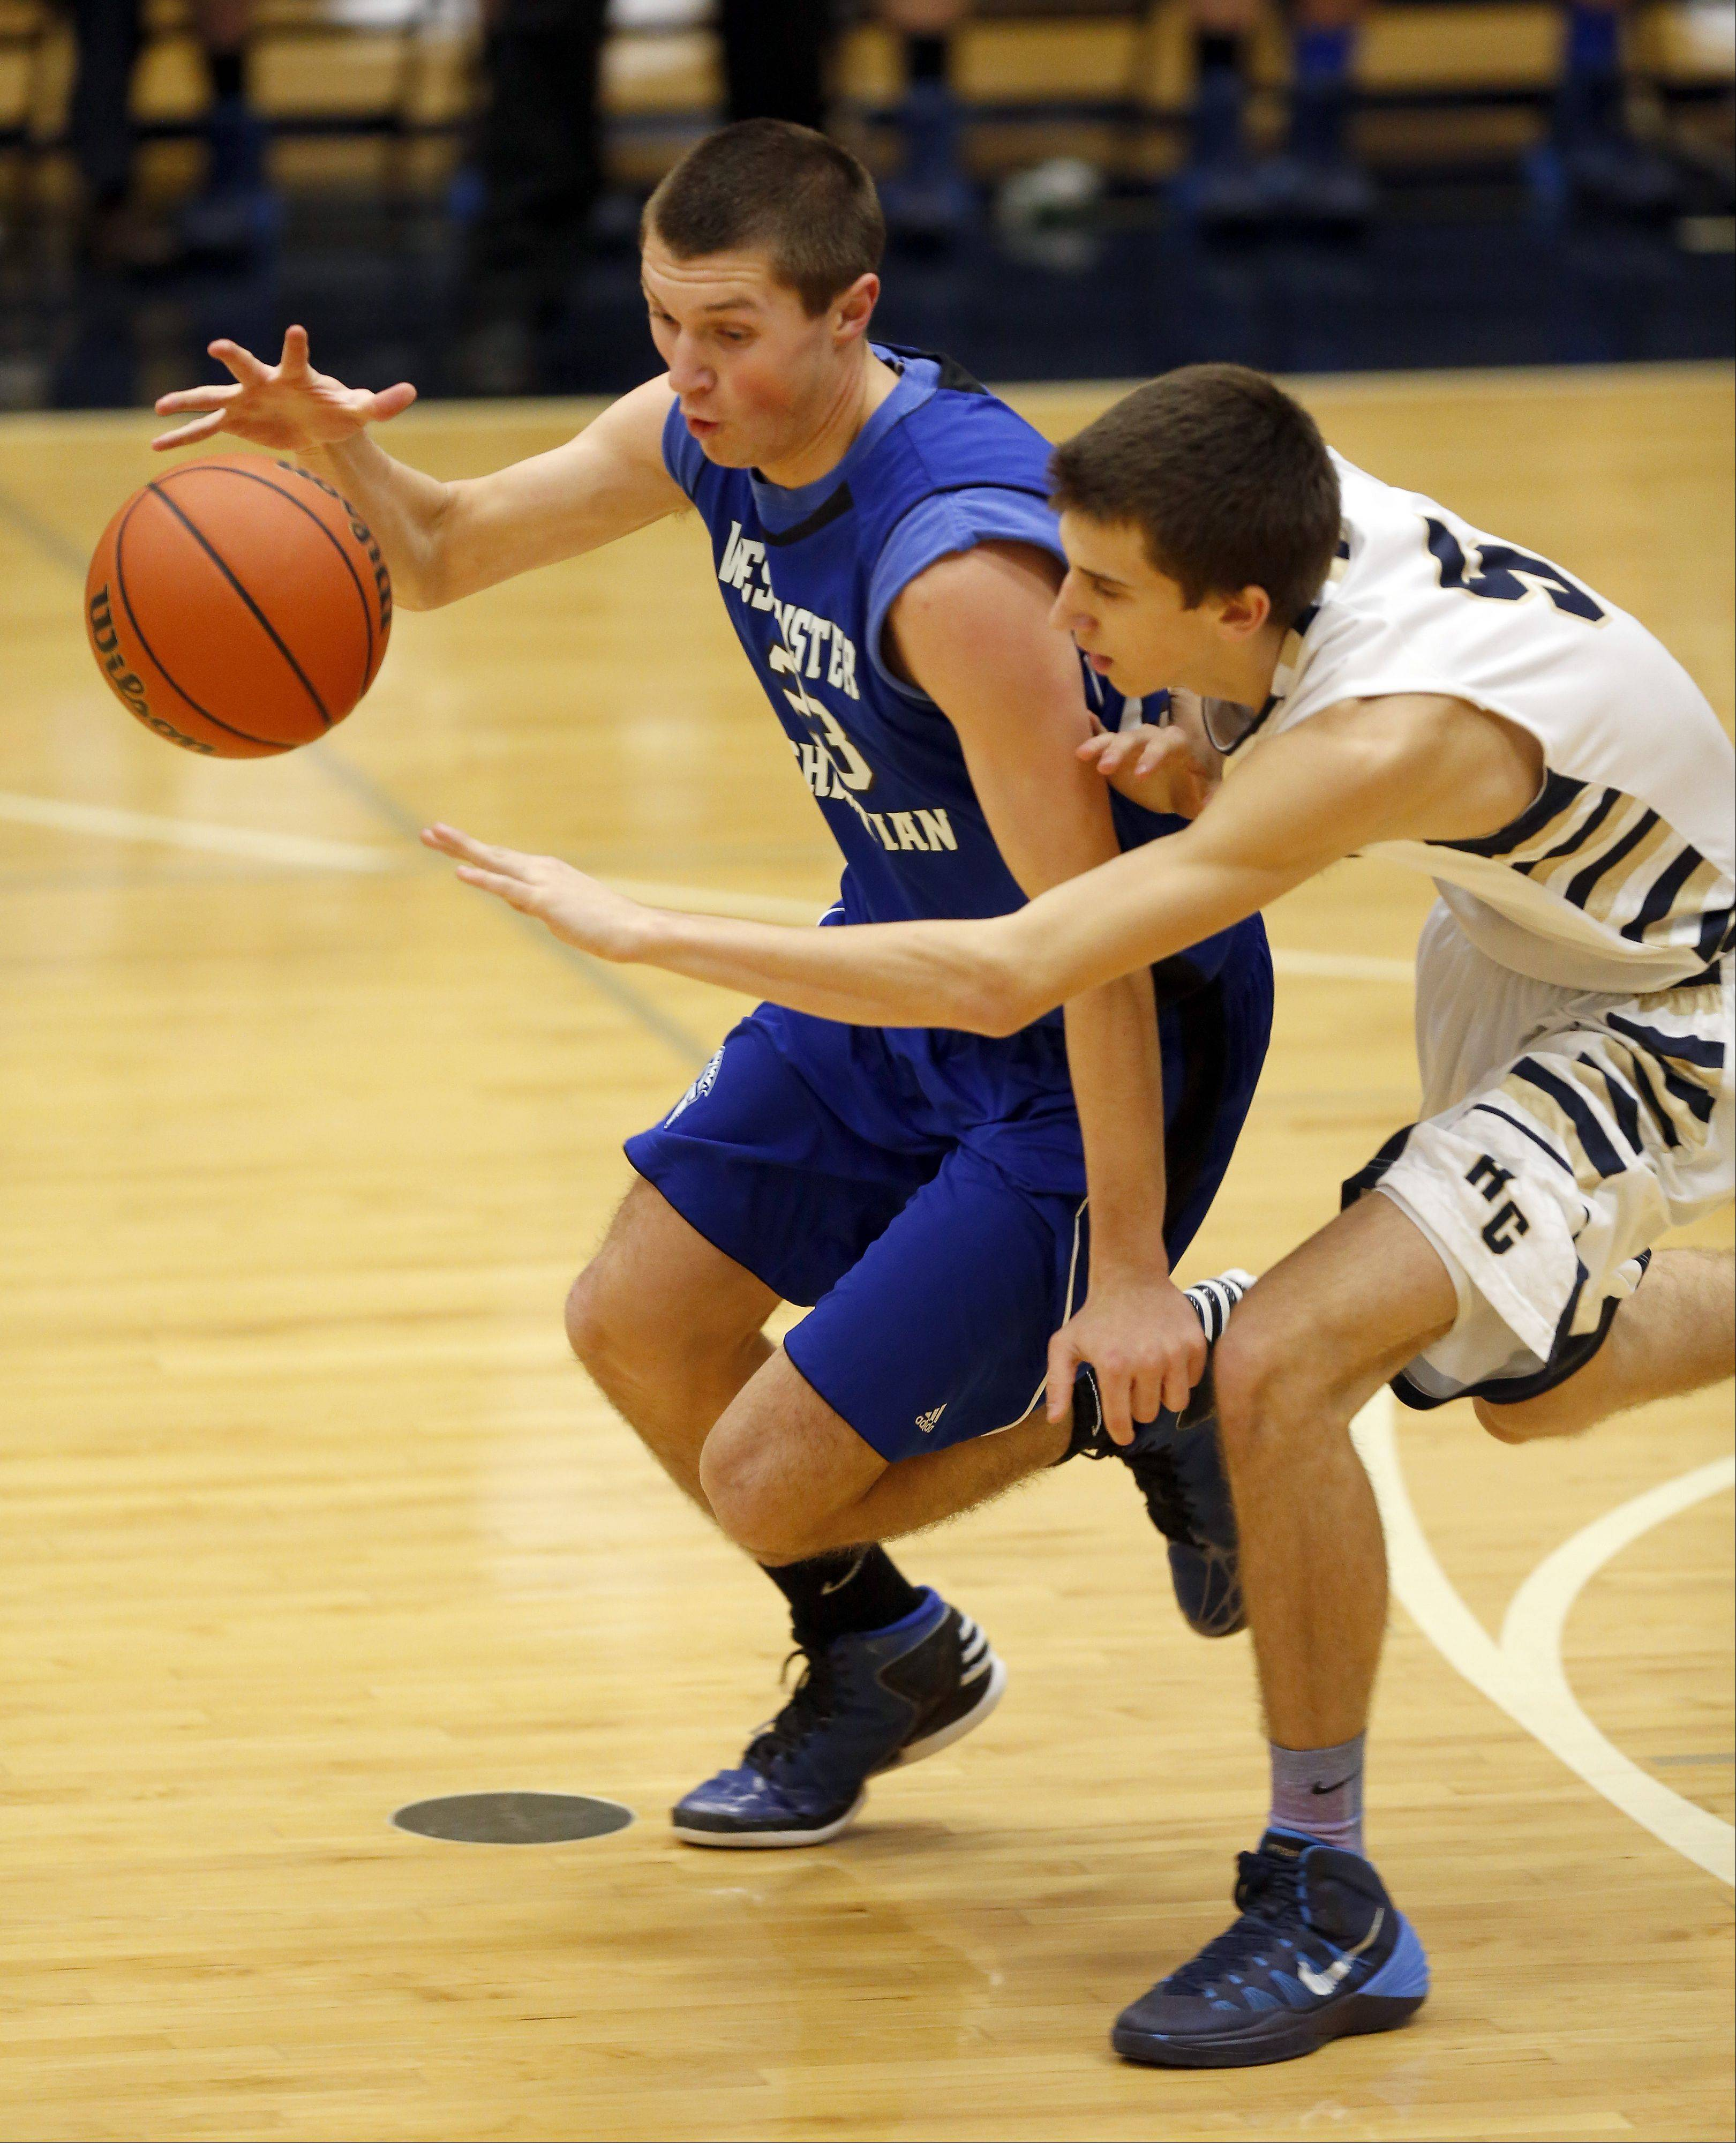 Westminster Christian's Robert Kleczynski works past Harvest Christian's Brett Cramer Friday in Elgin.